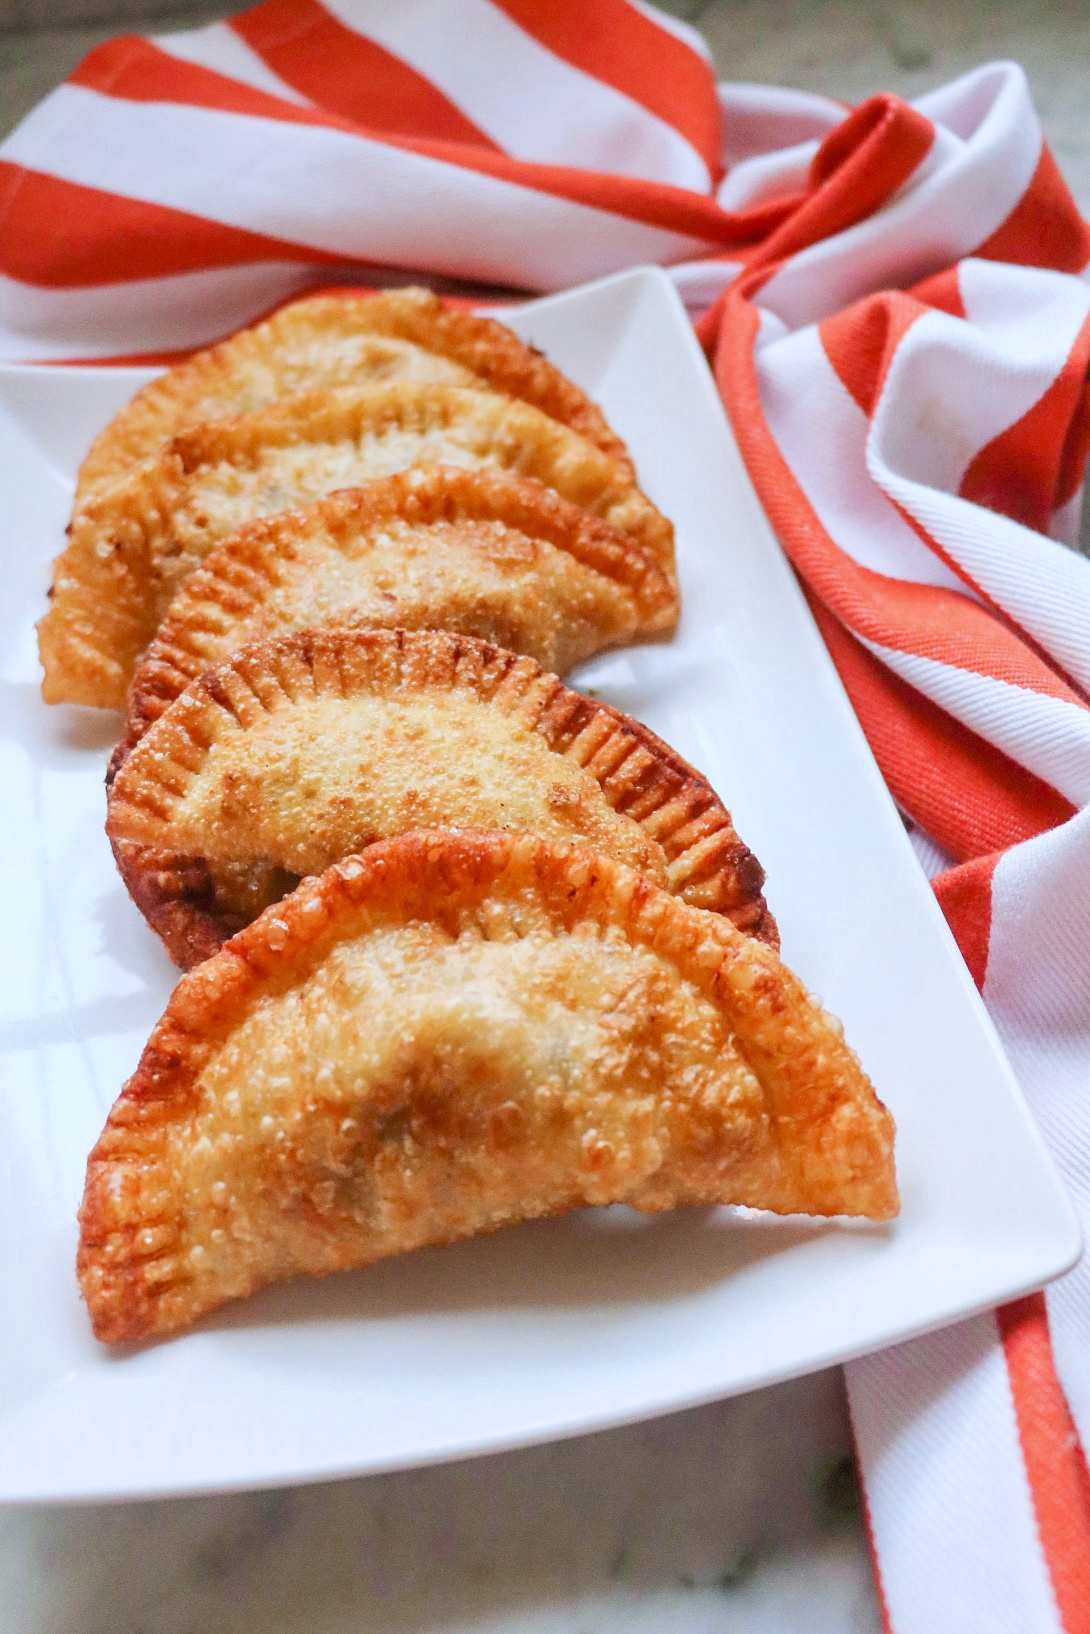 Fried Beef Empanadas with Olives and Sofrito